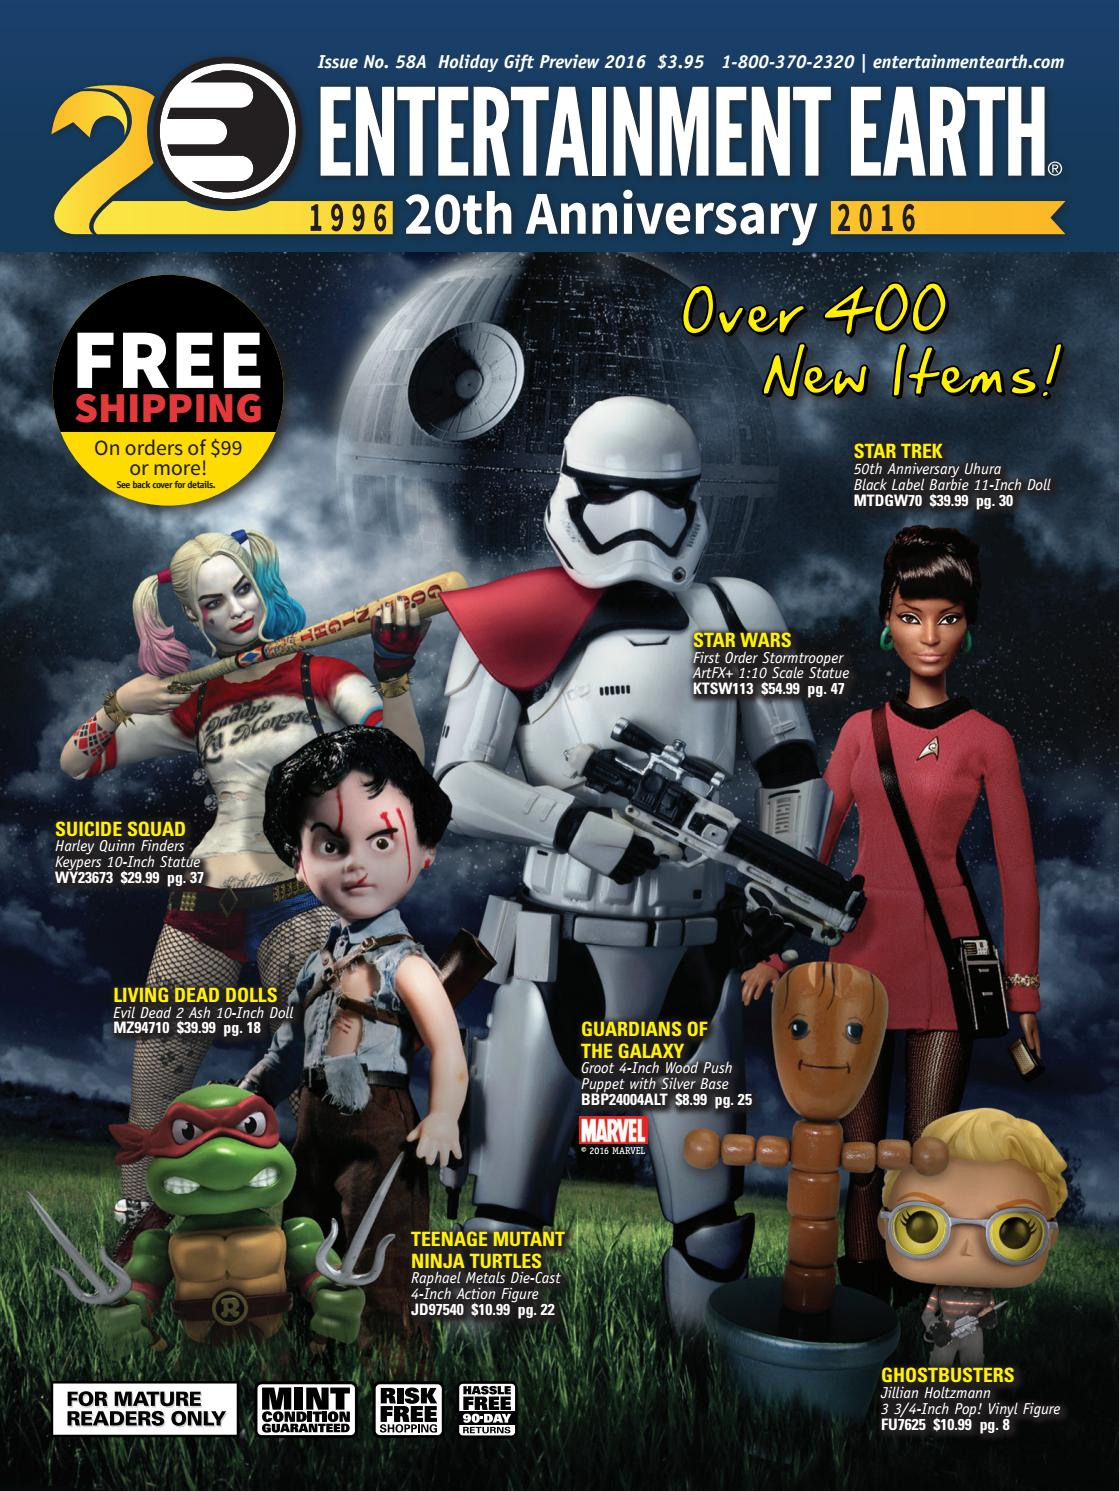 33f3a126 Entertainment Earth Holiday Gift Preview 2016 Catalog by Entertainment  Earth - issuu